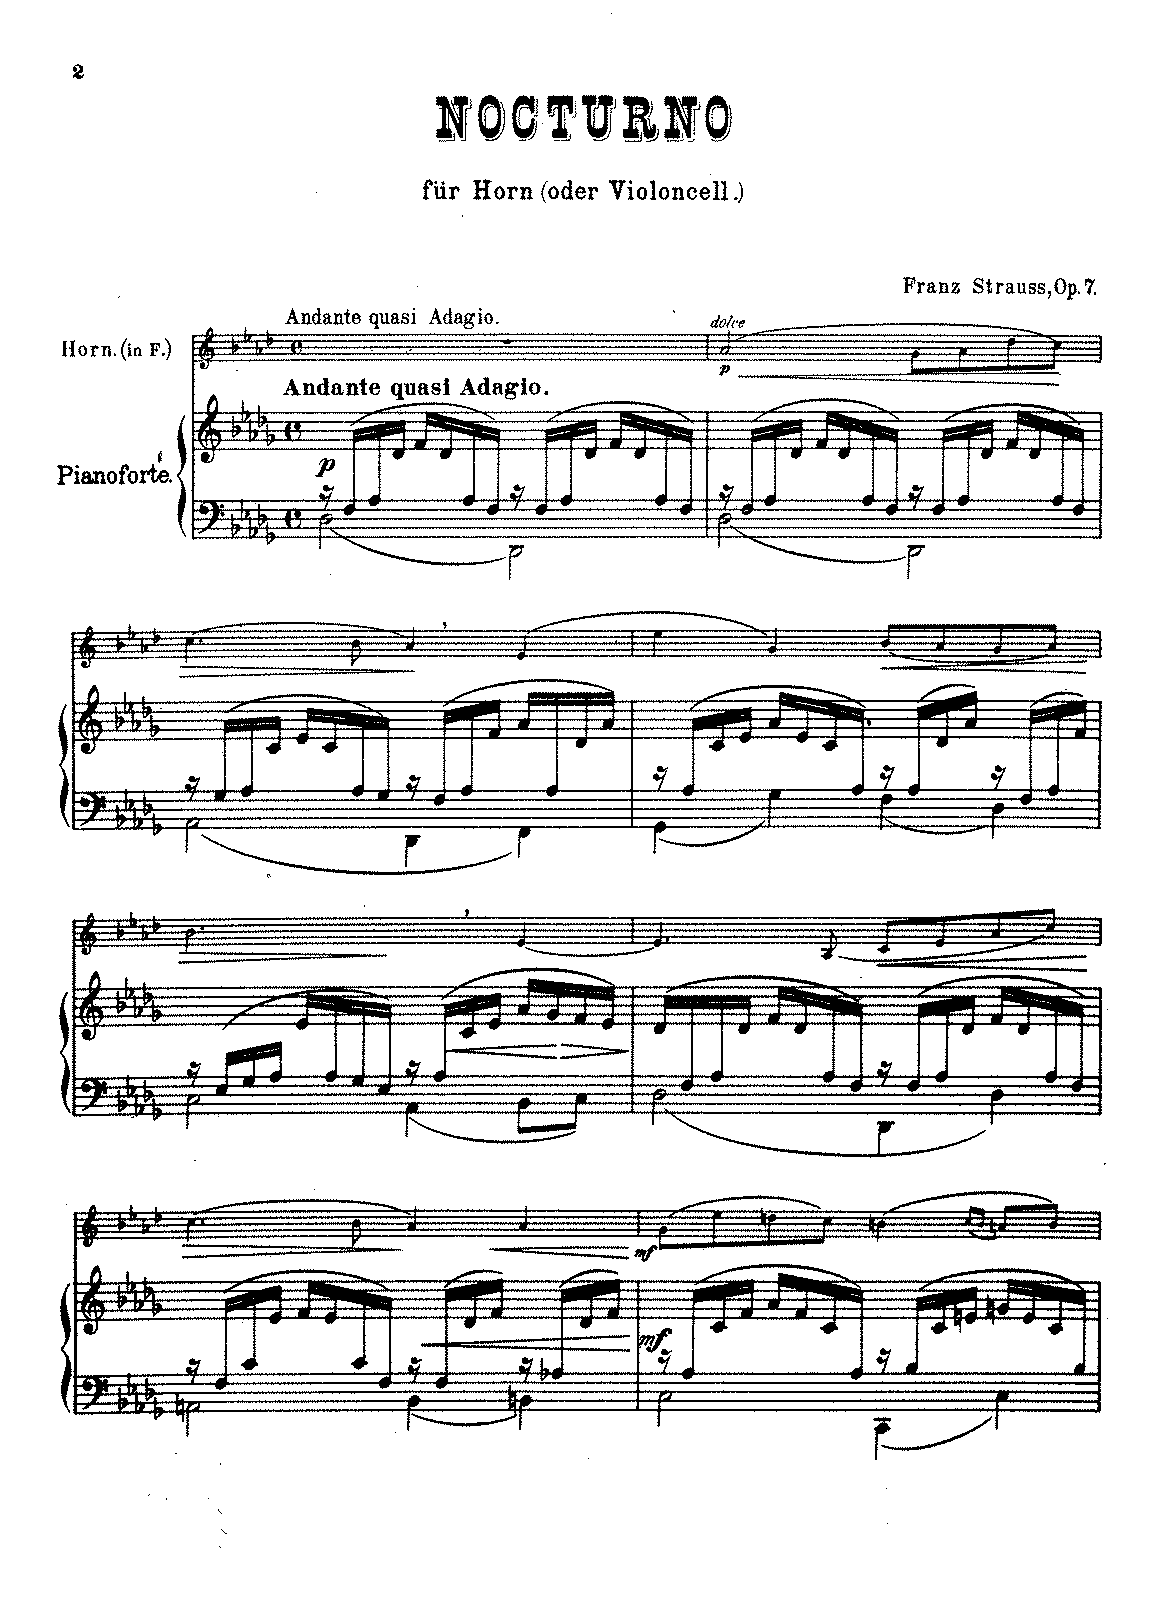 Strauss-Nocturno piano part.pdf